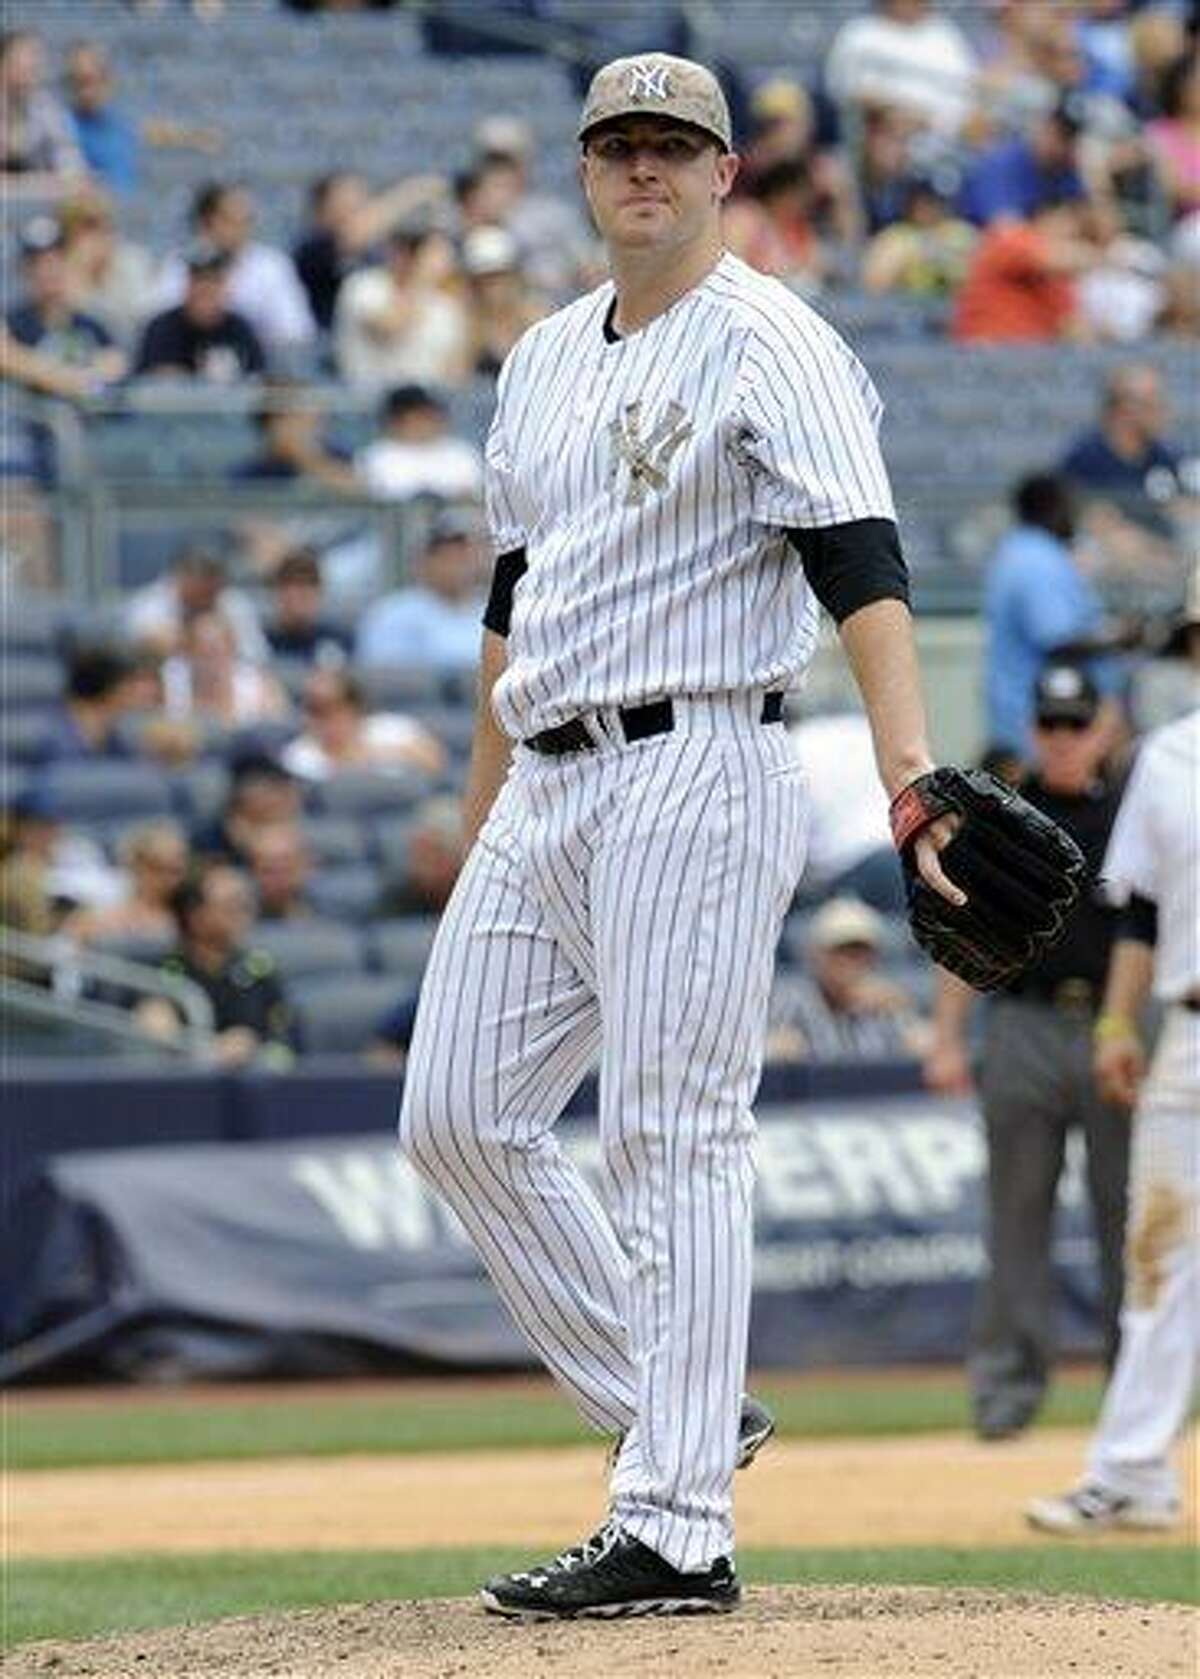 New York Yankees pitcher Phil Hughes reacts as manager Joe Girardi heads to the mound to take him out of the baseball game during the eighth inning after he gave up a two-run home run to Minnesota Twins' Pedro Florimon Saturday, July 13, 2013, at Yankee Stadium in New York. (AP Photo/Bill Kostroun)